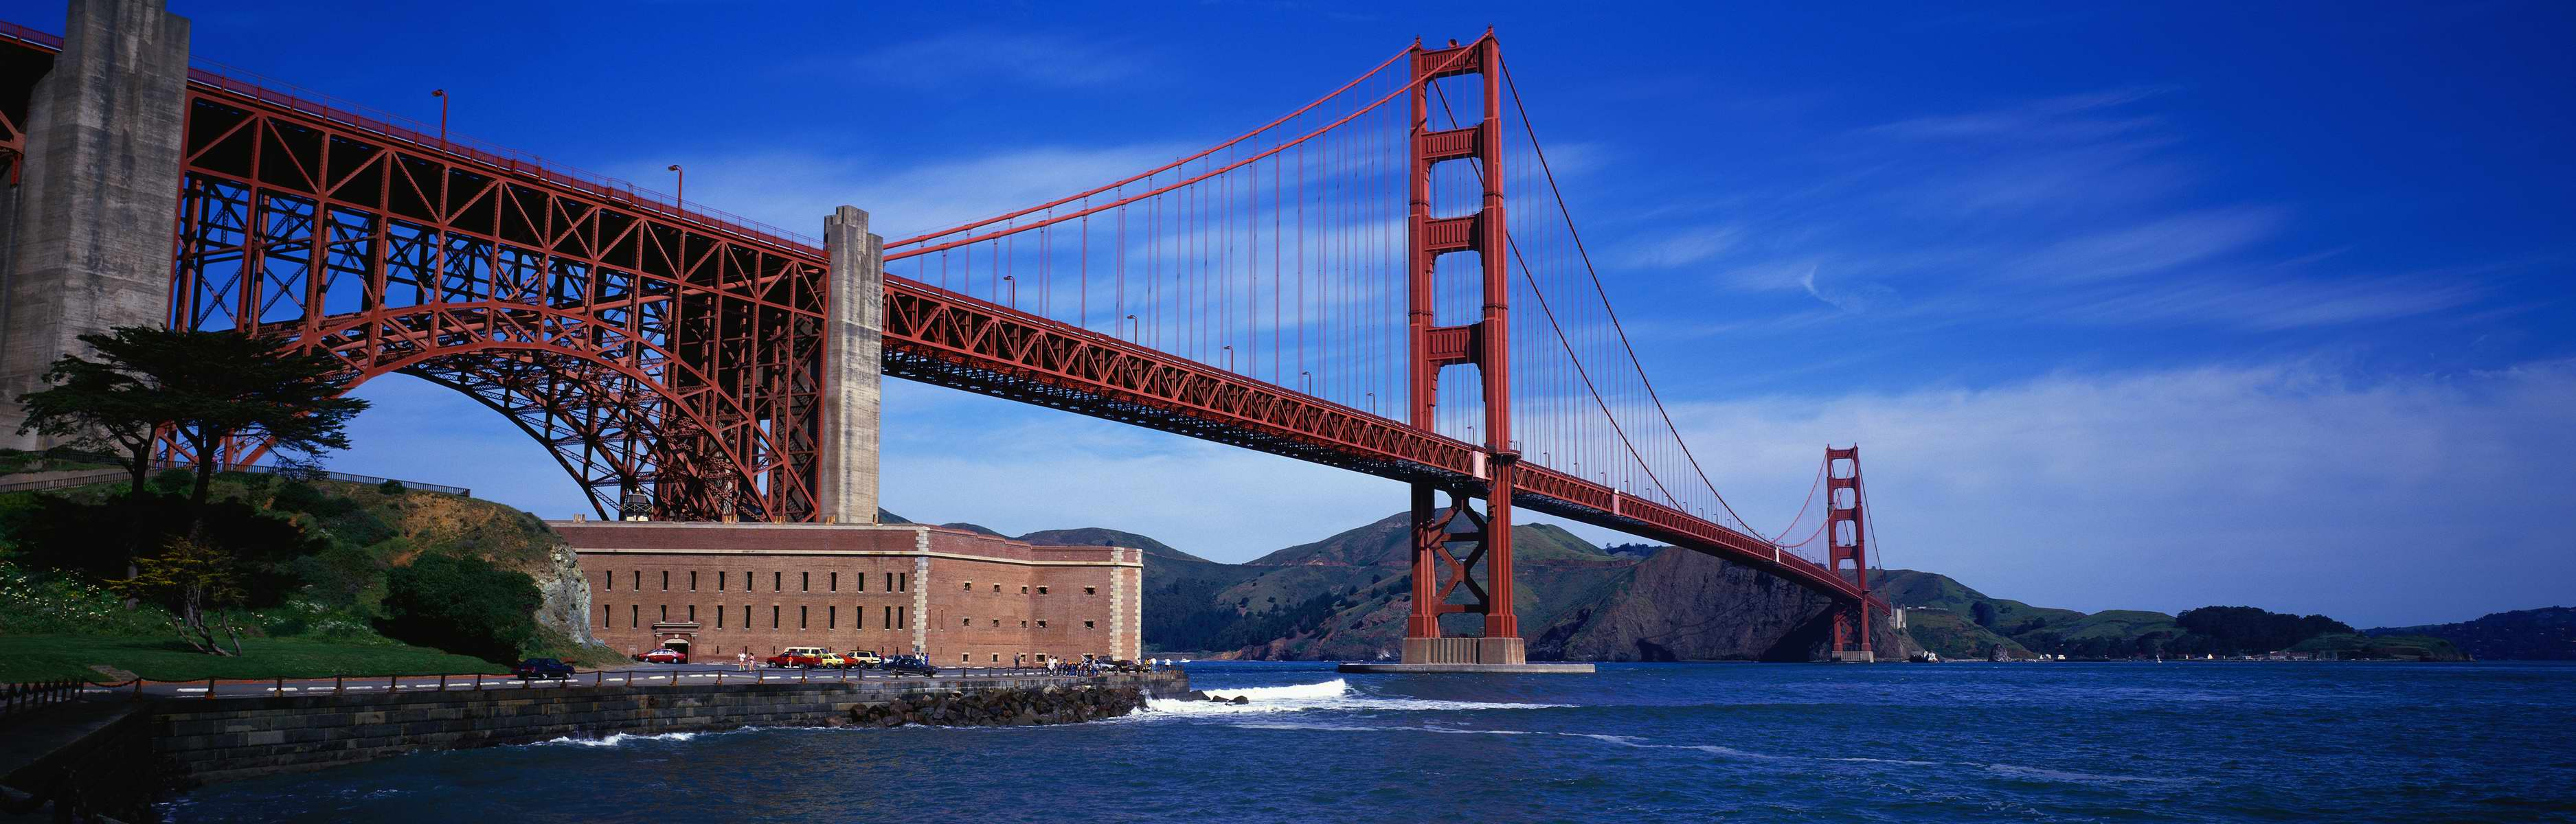 golden gate panorama.jpg